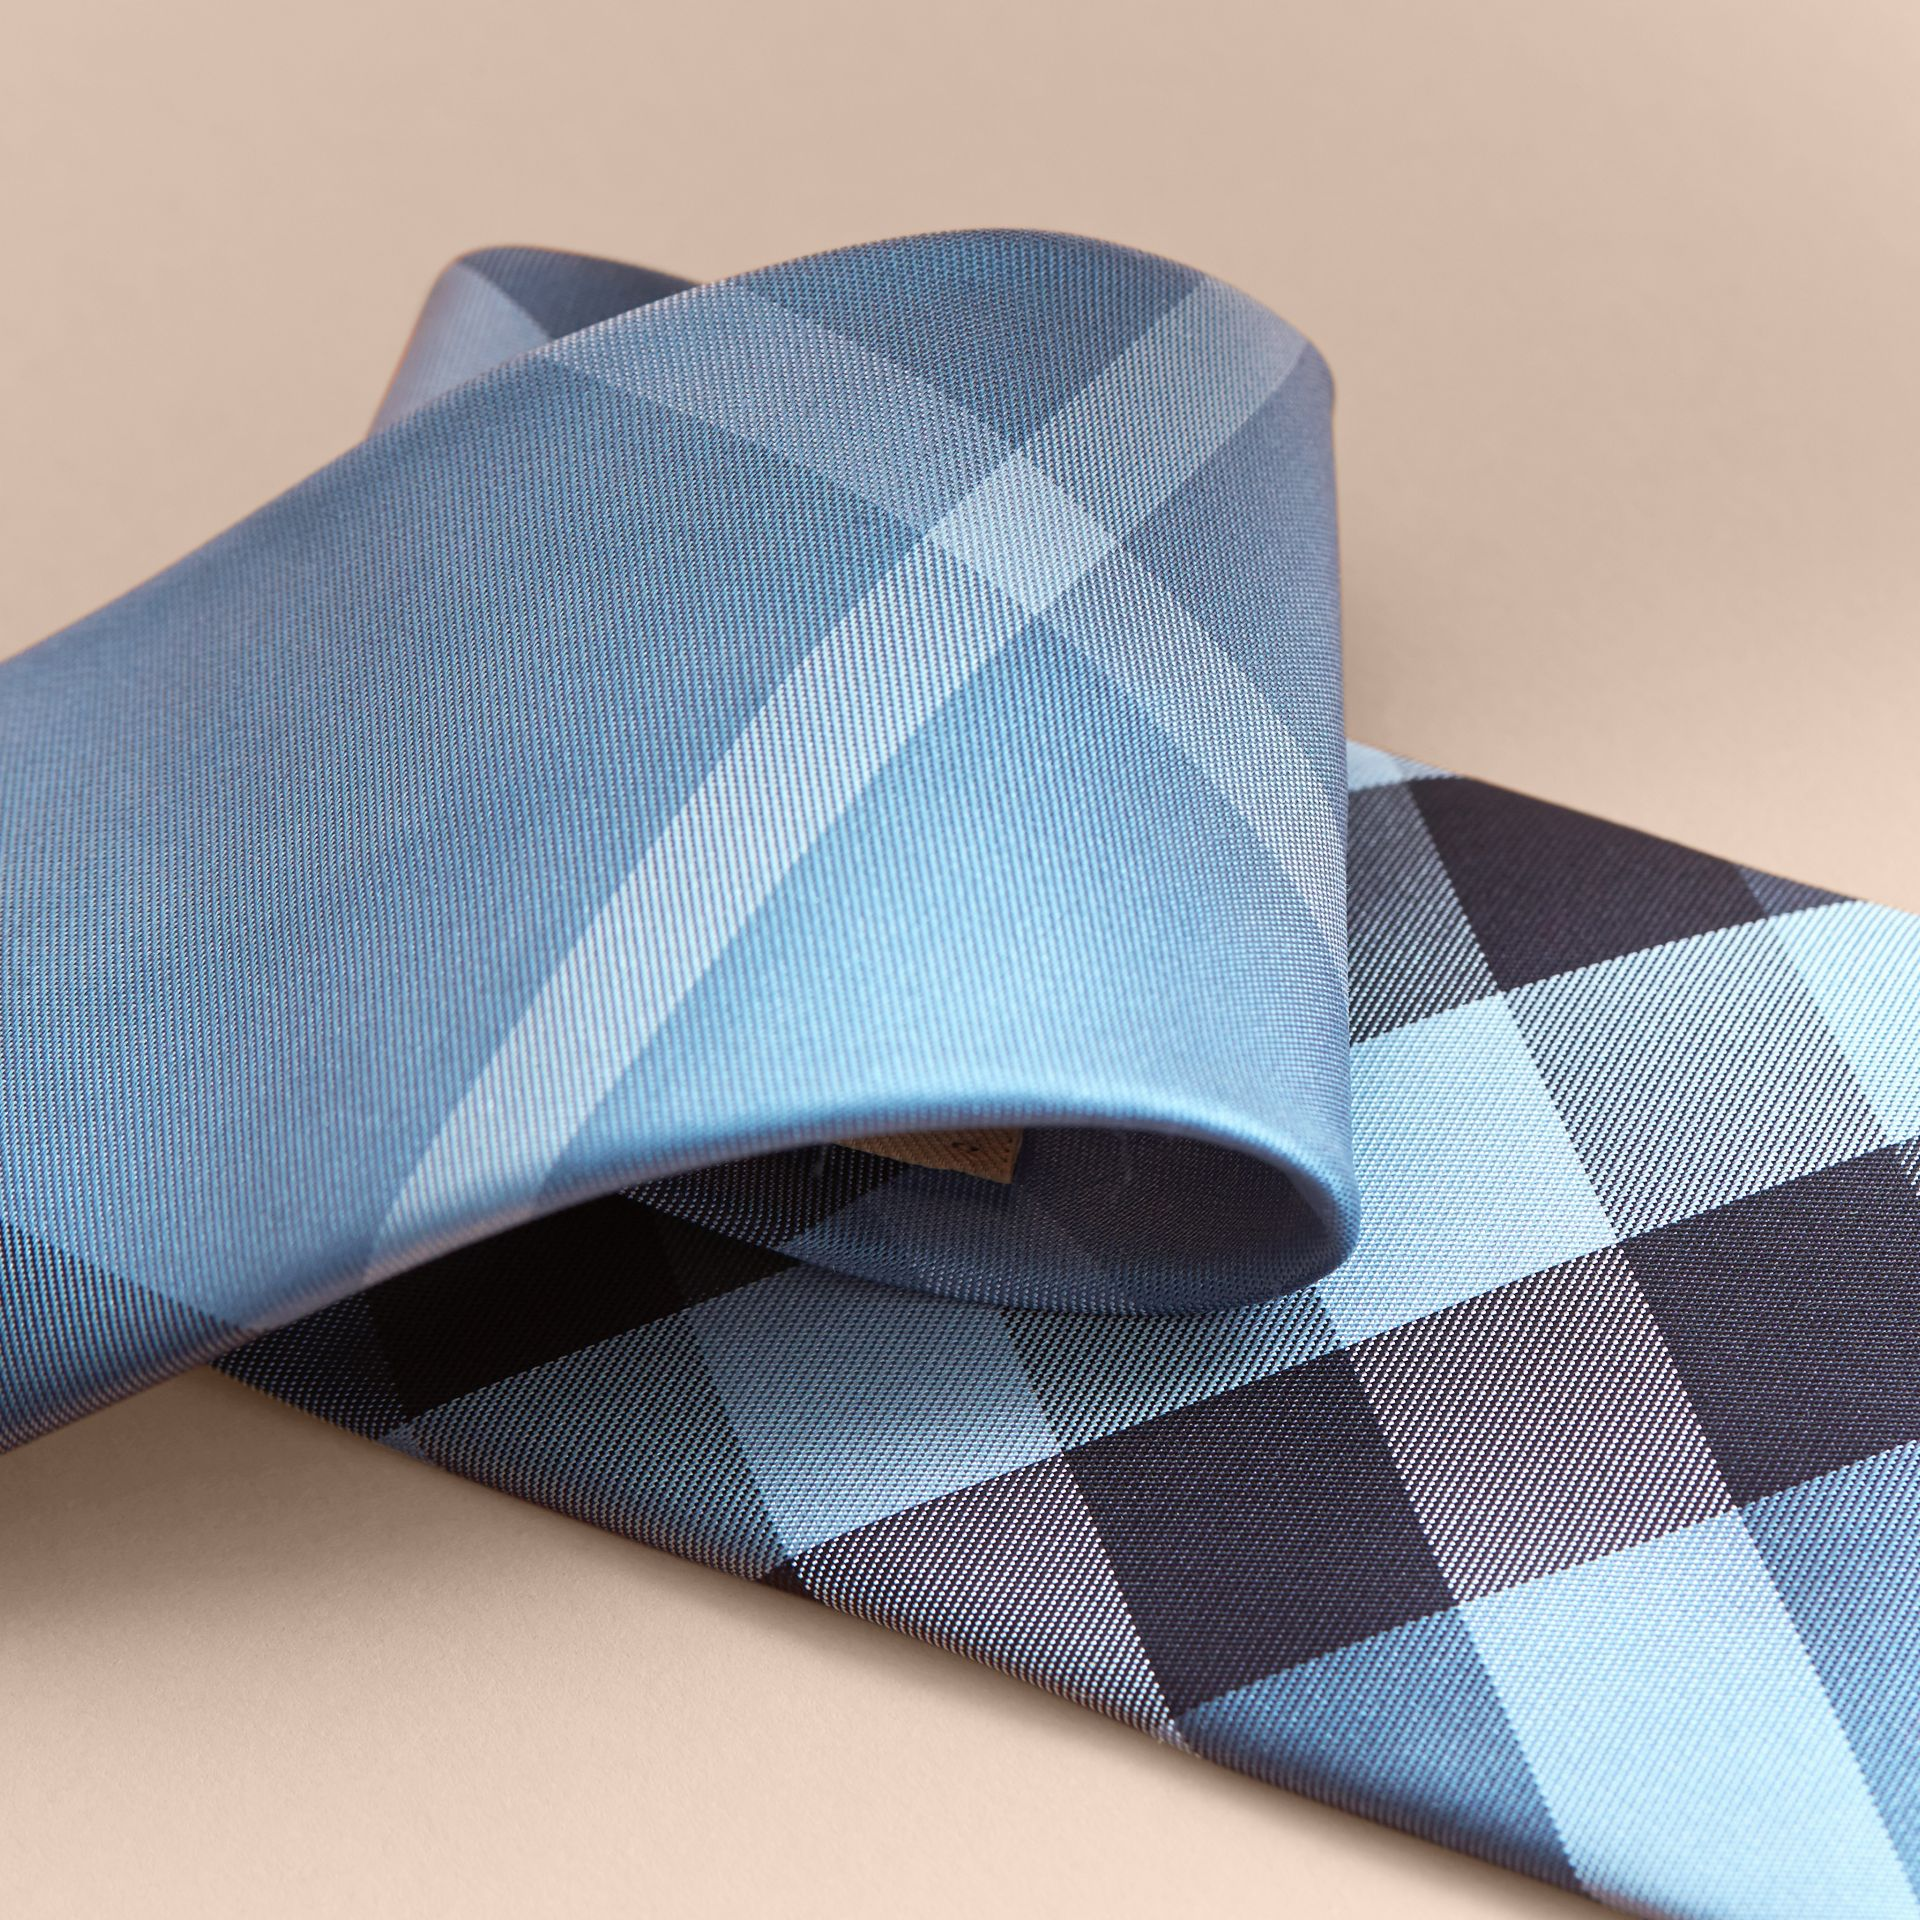 Modern Cut Check Silk Tie in Light Blue - Men | Burberry Hong Kong - gallery image 2